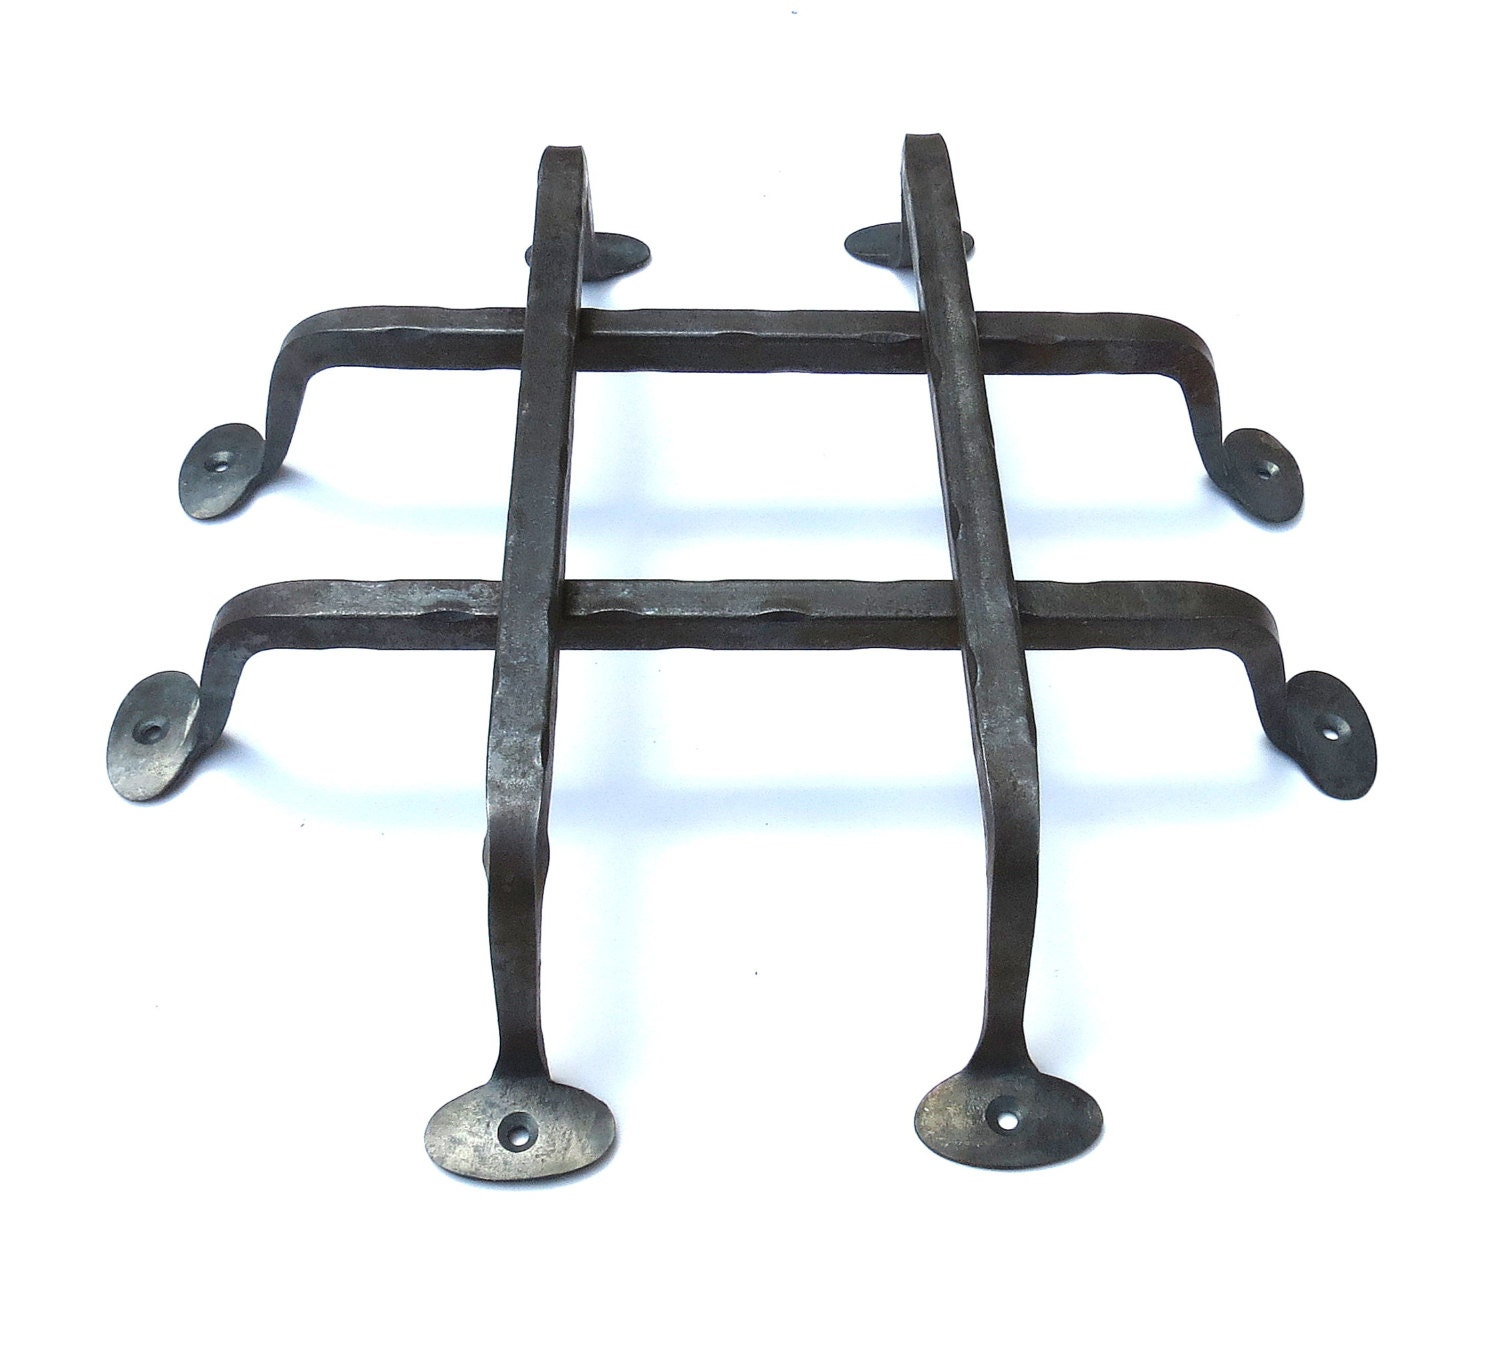 Forged Gate Latch Bar : Hand forged door grill wrought iron rustic metal gate